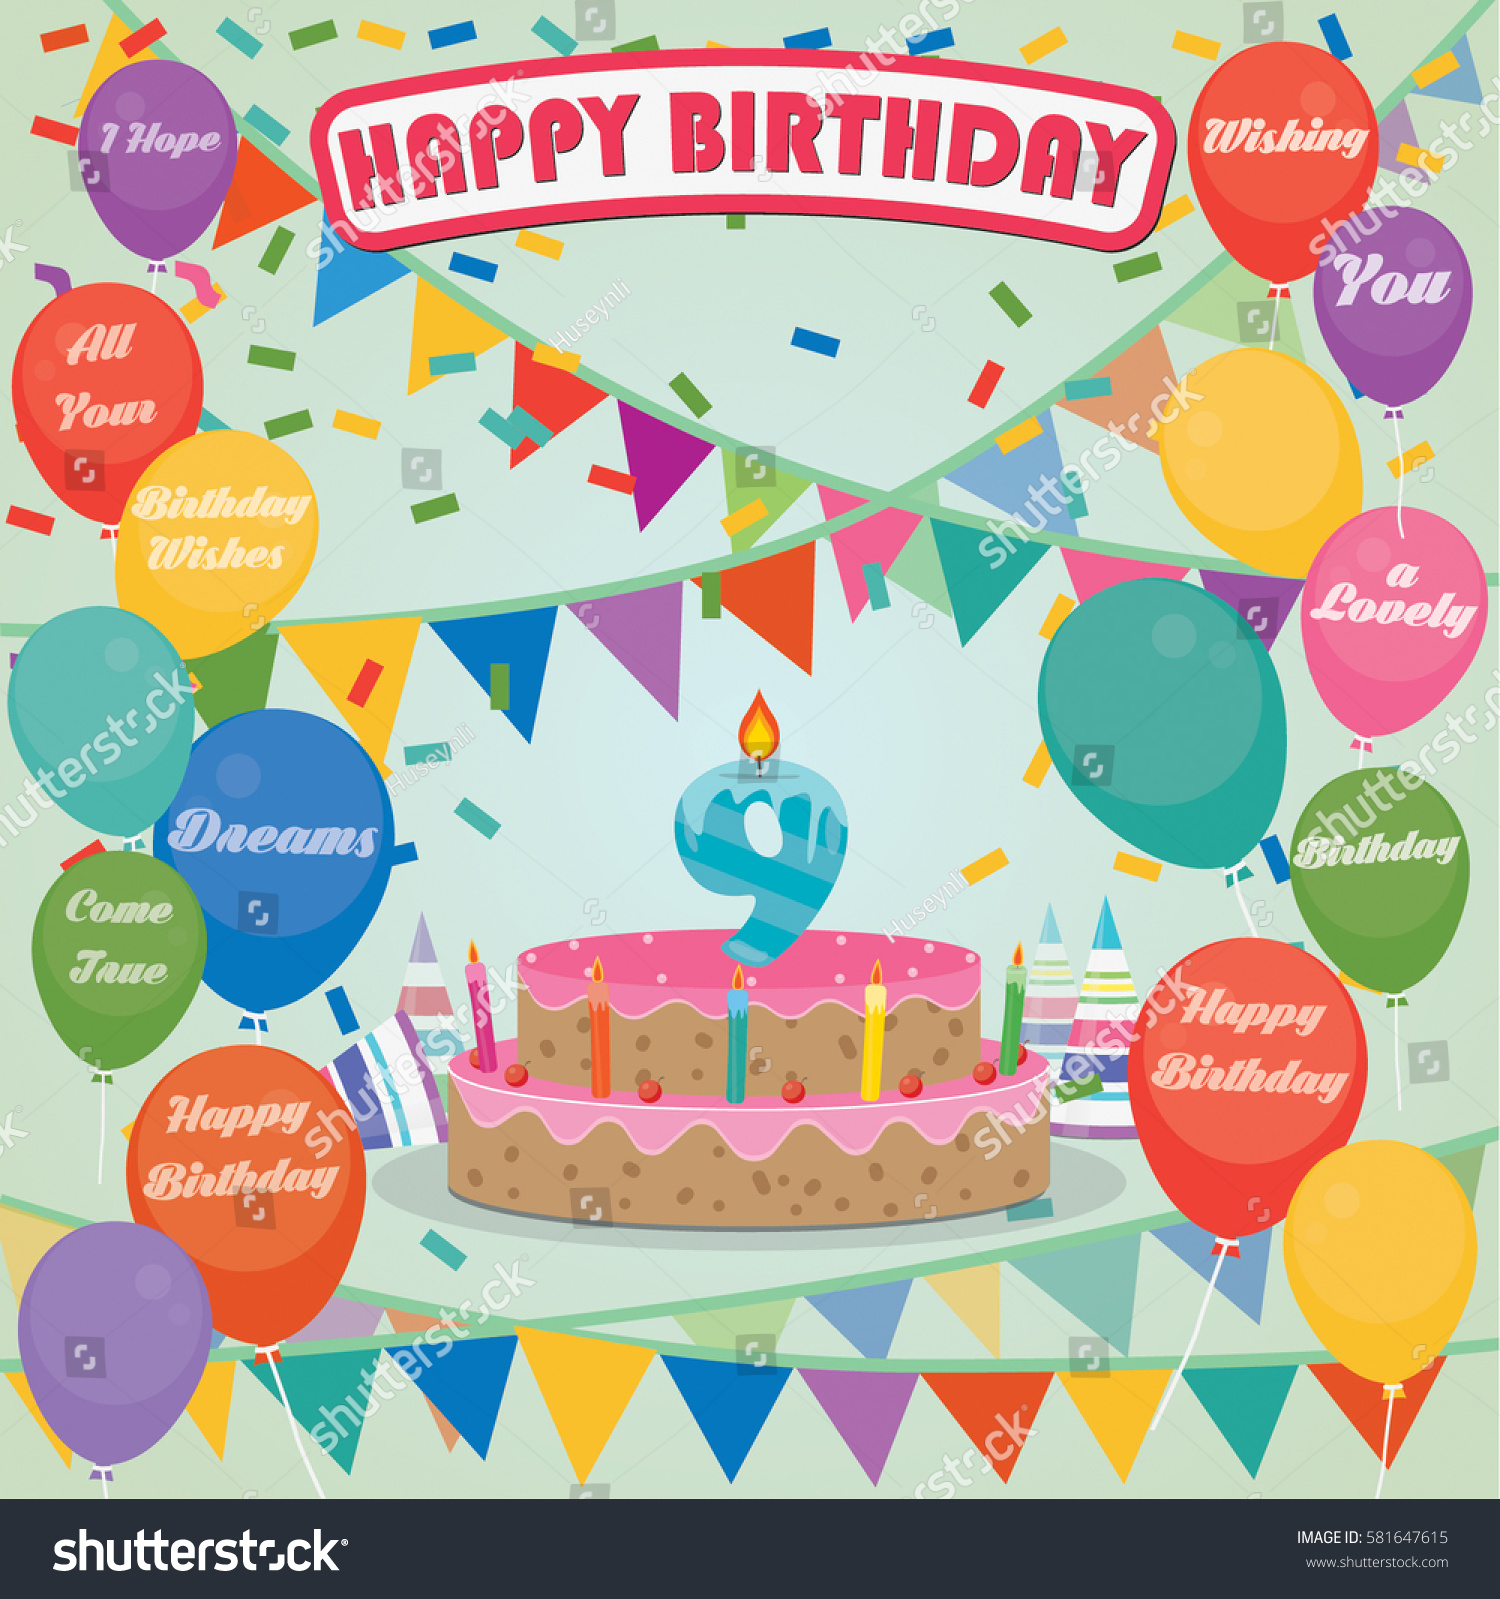 8th Birthday Cake And Decoration Background In Flat Design With